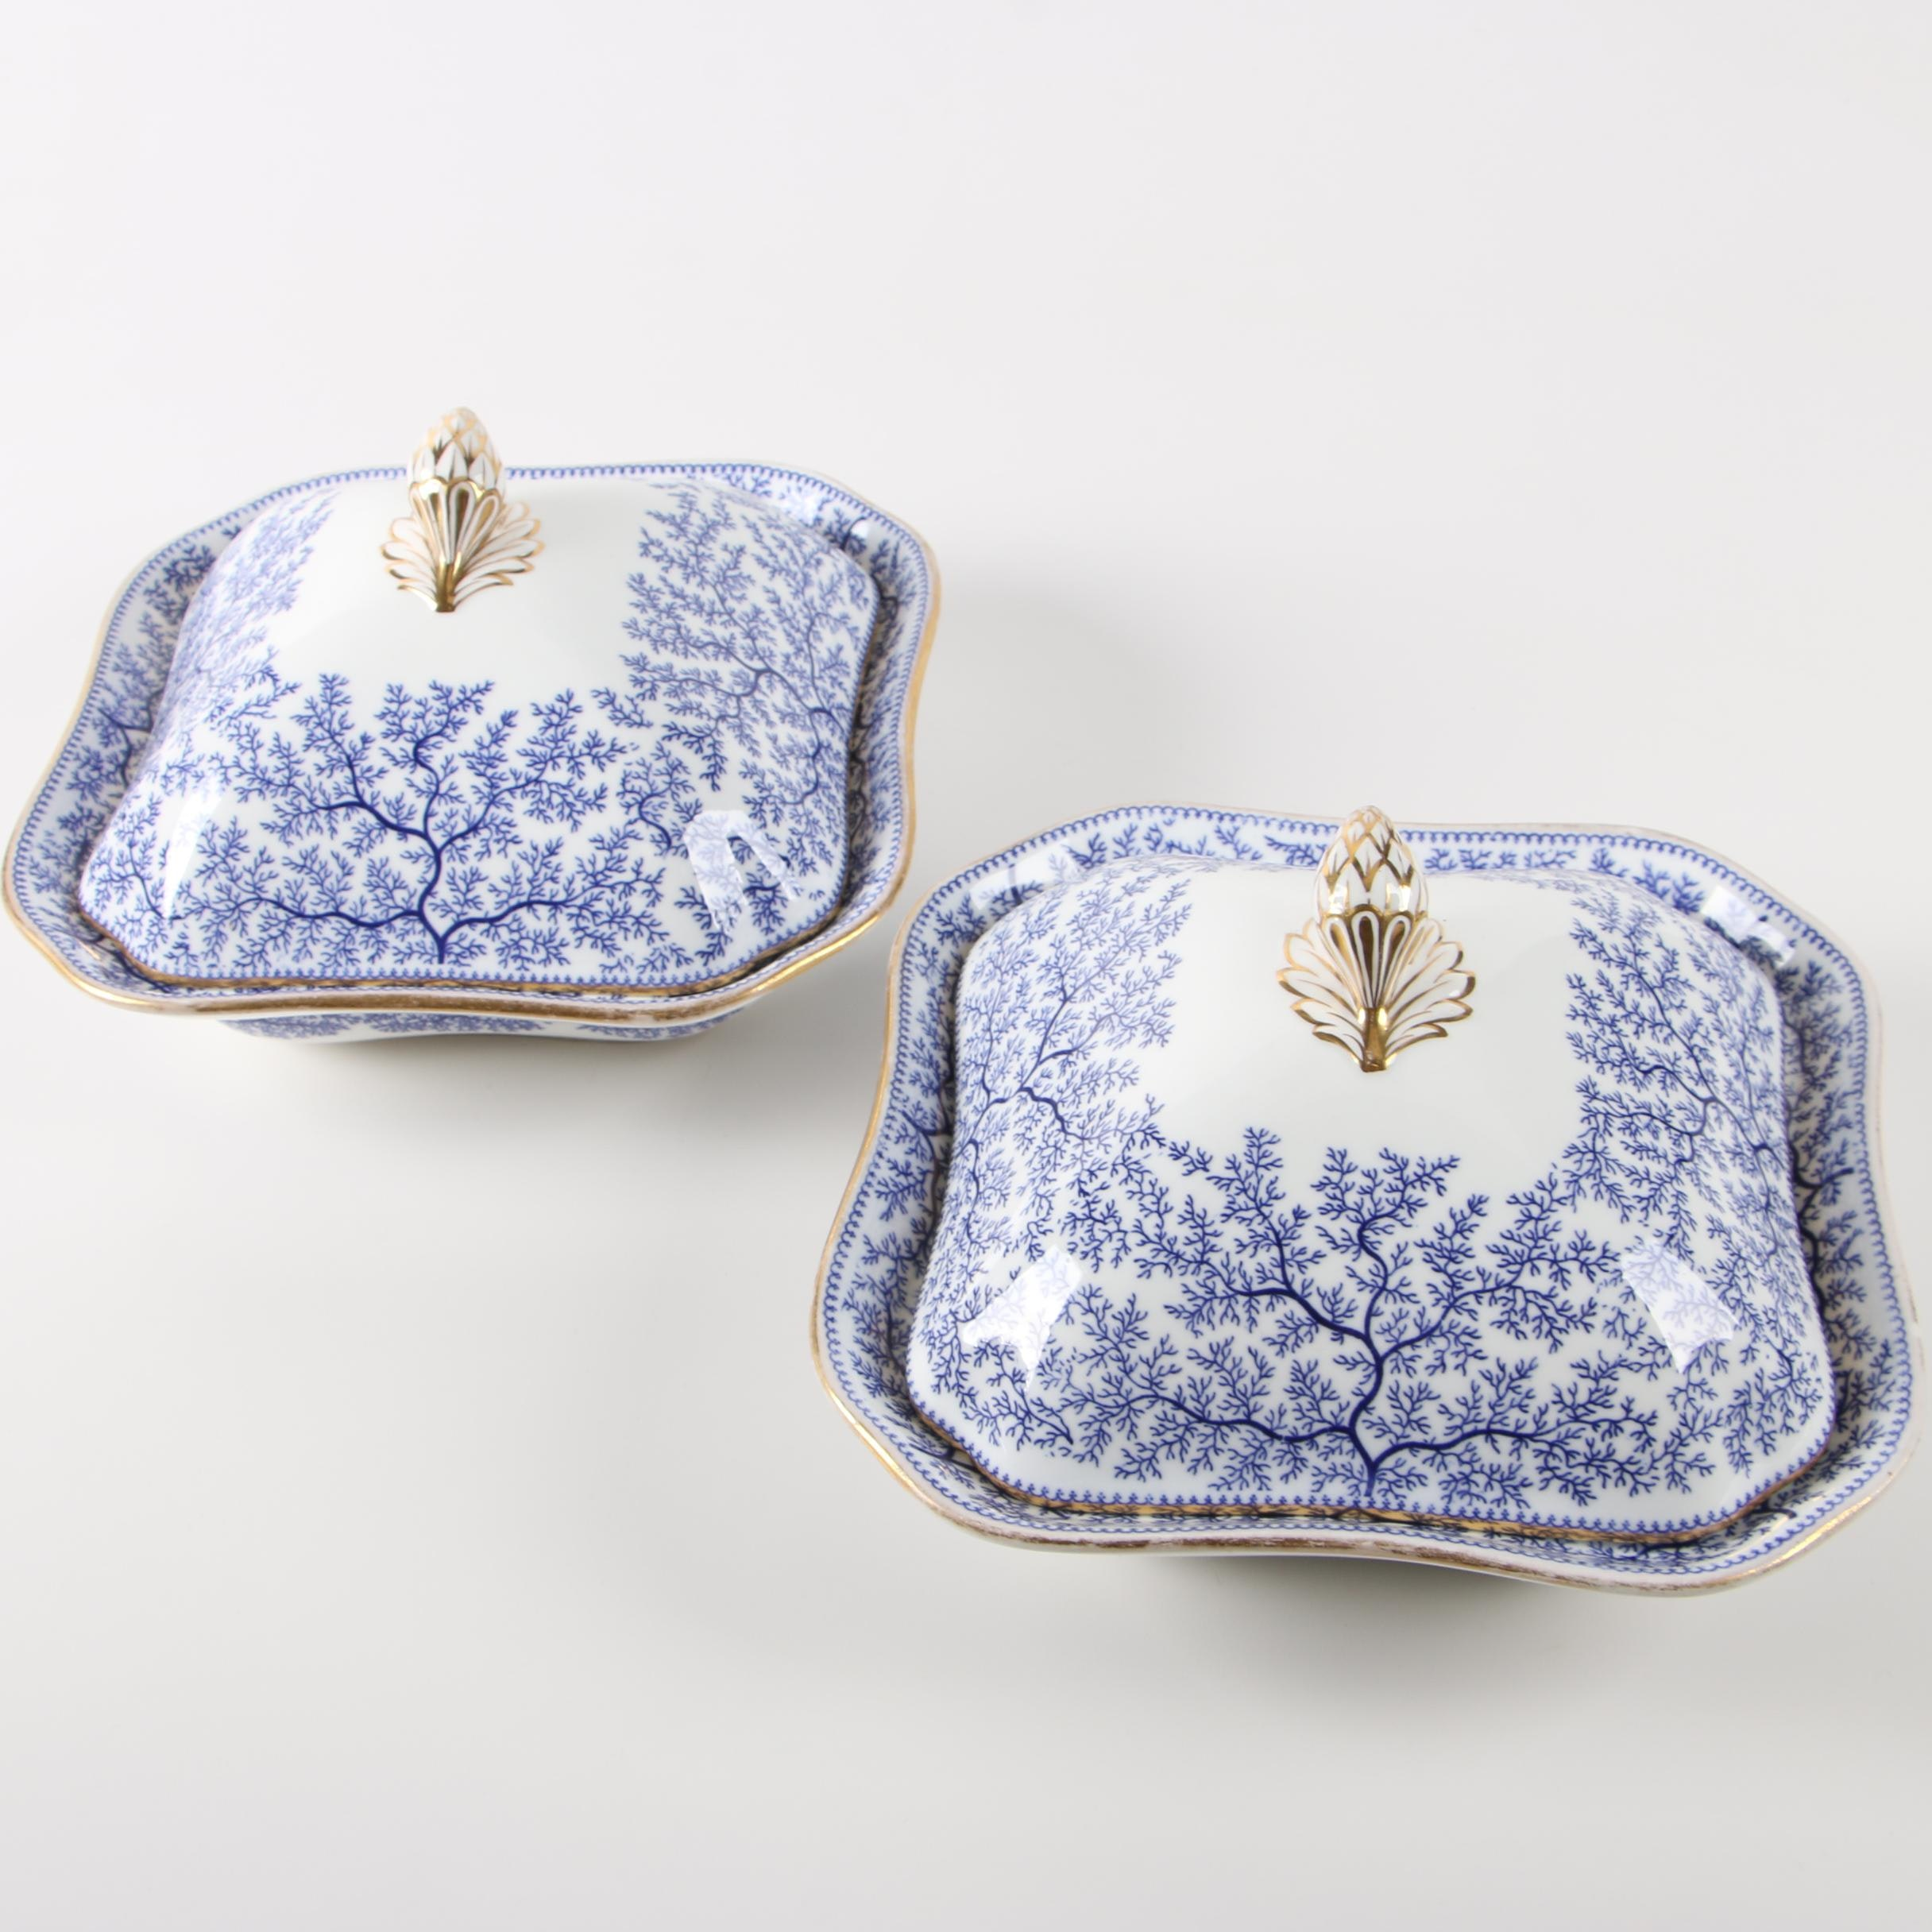 Pair of Copeland Blue and White Transferware Covered Dishes, 1851-1885